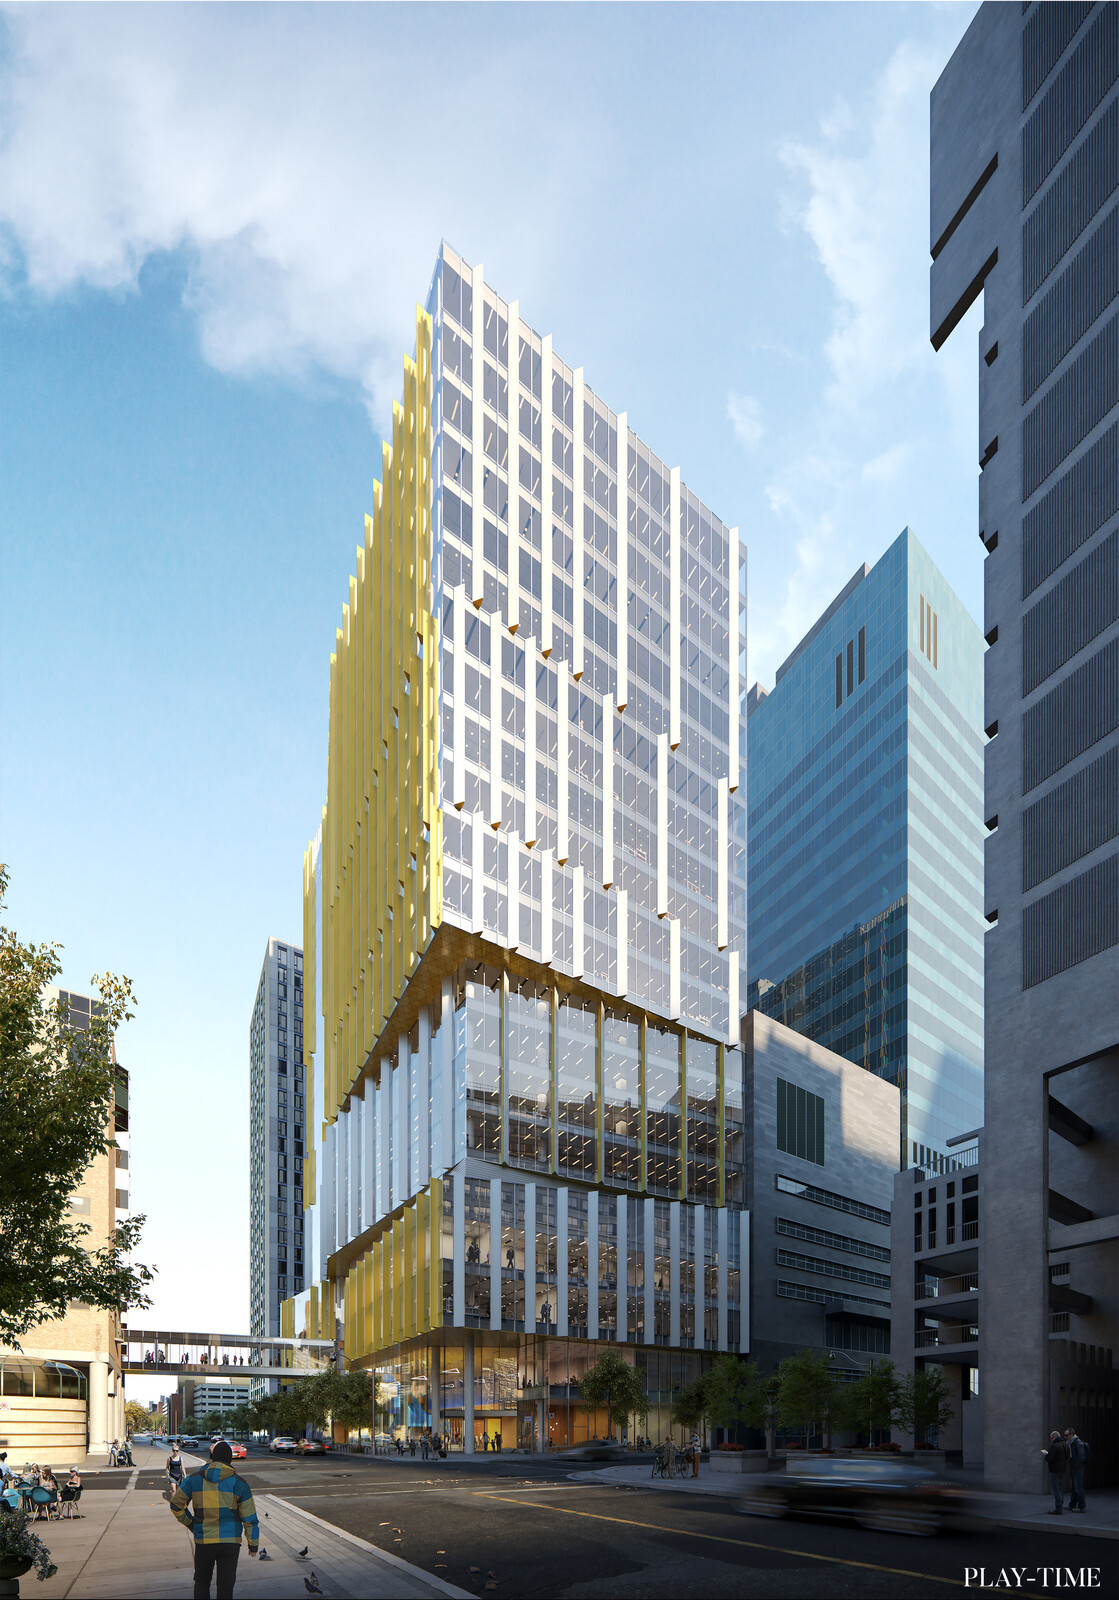 SickKids Support Center by B+H Architects. Image by Play-time